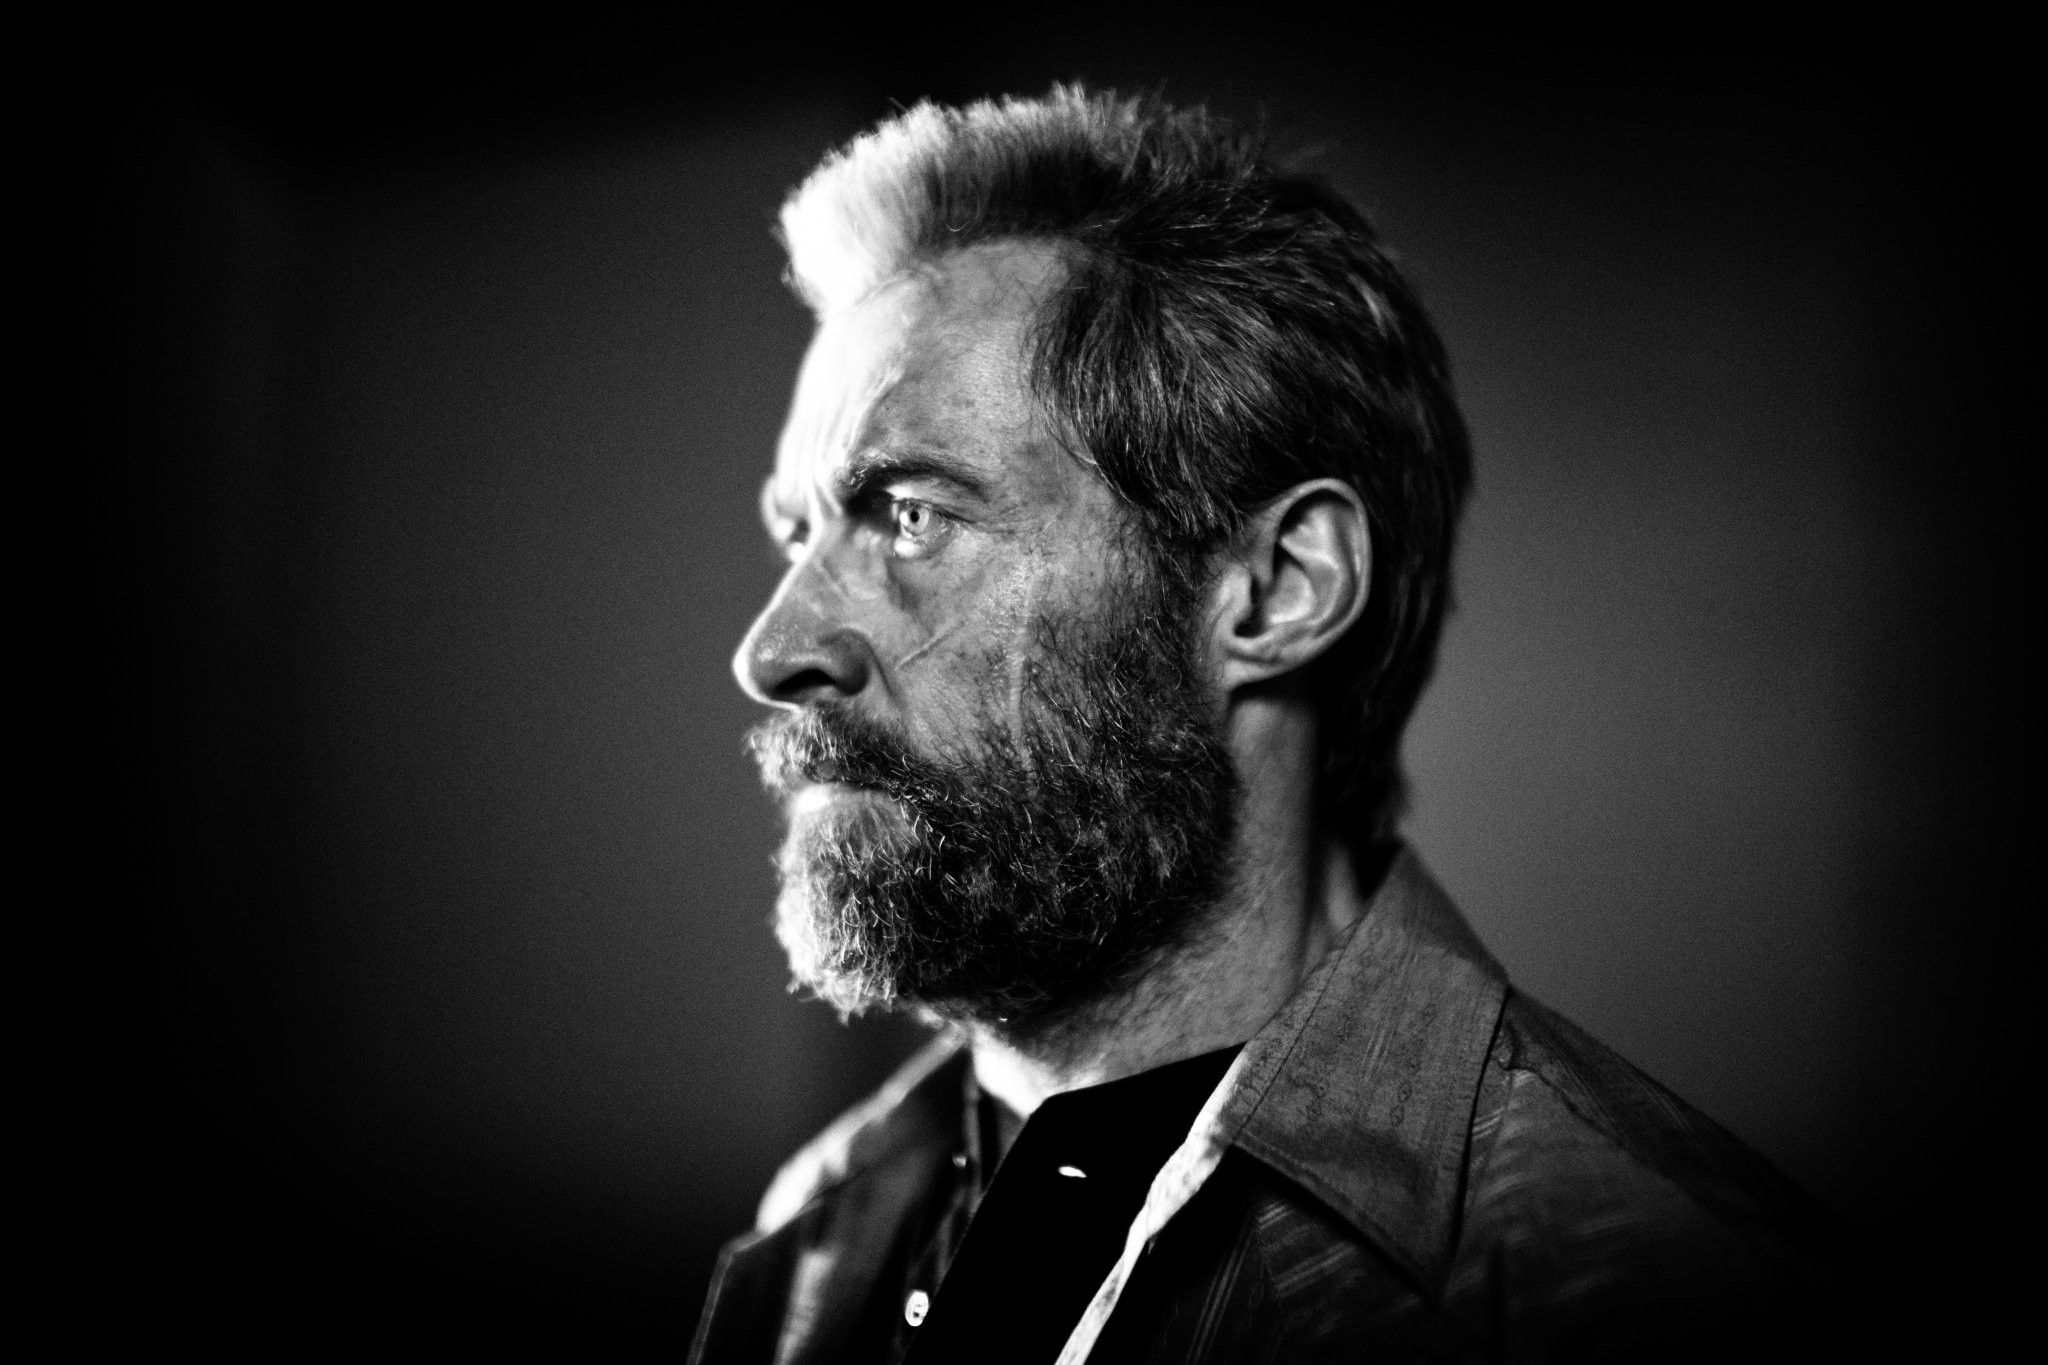 Logan widescreen wallpapers